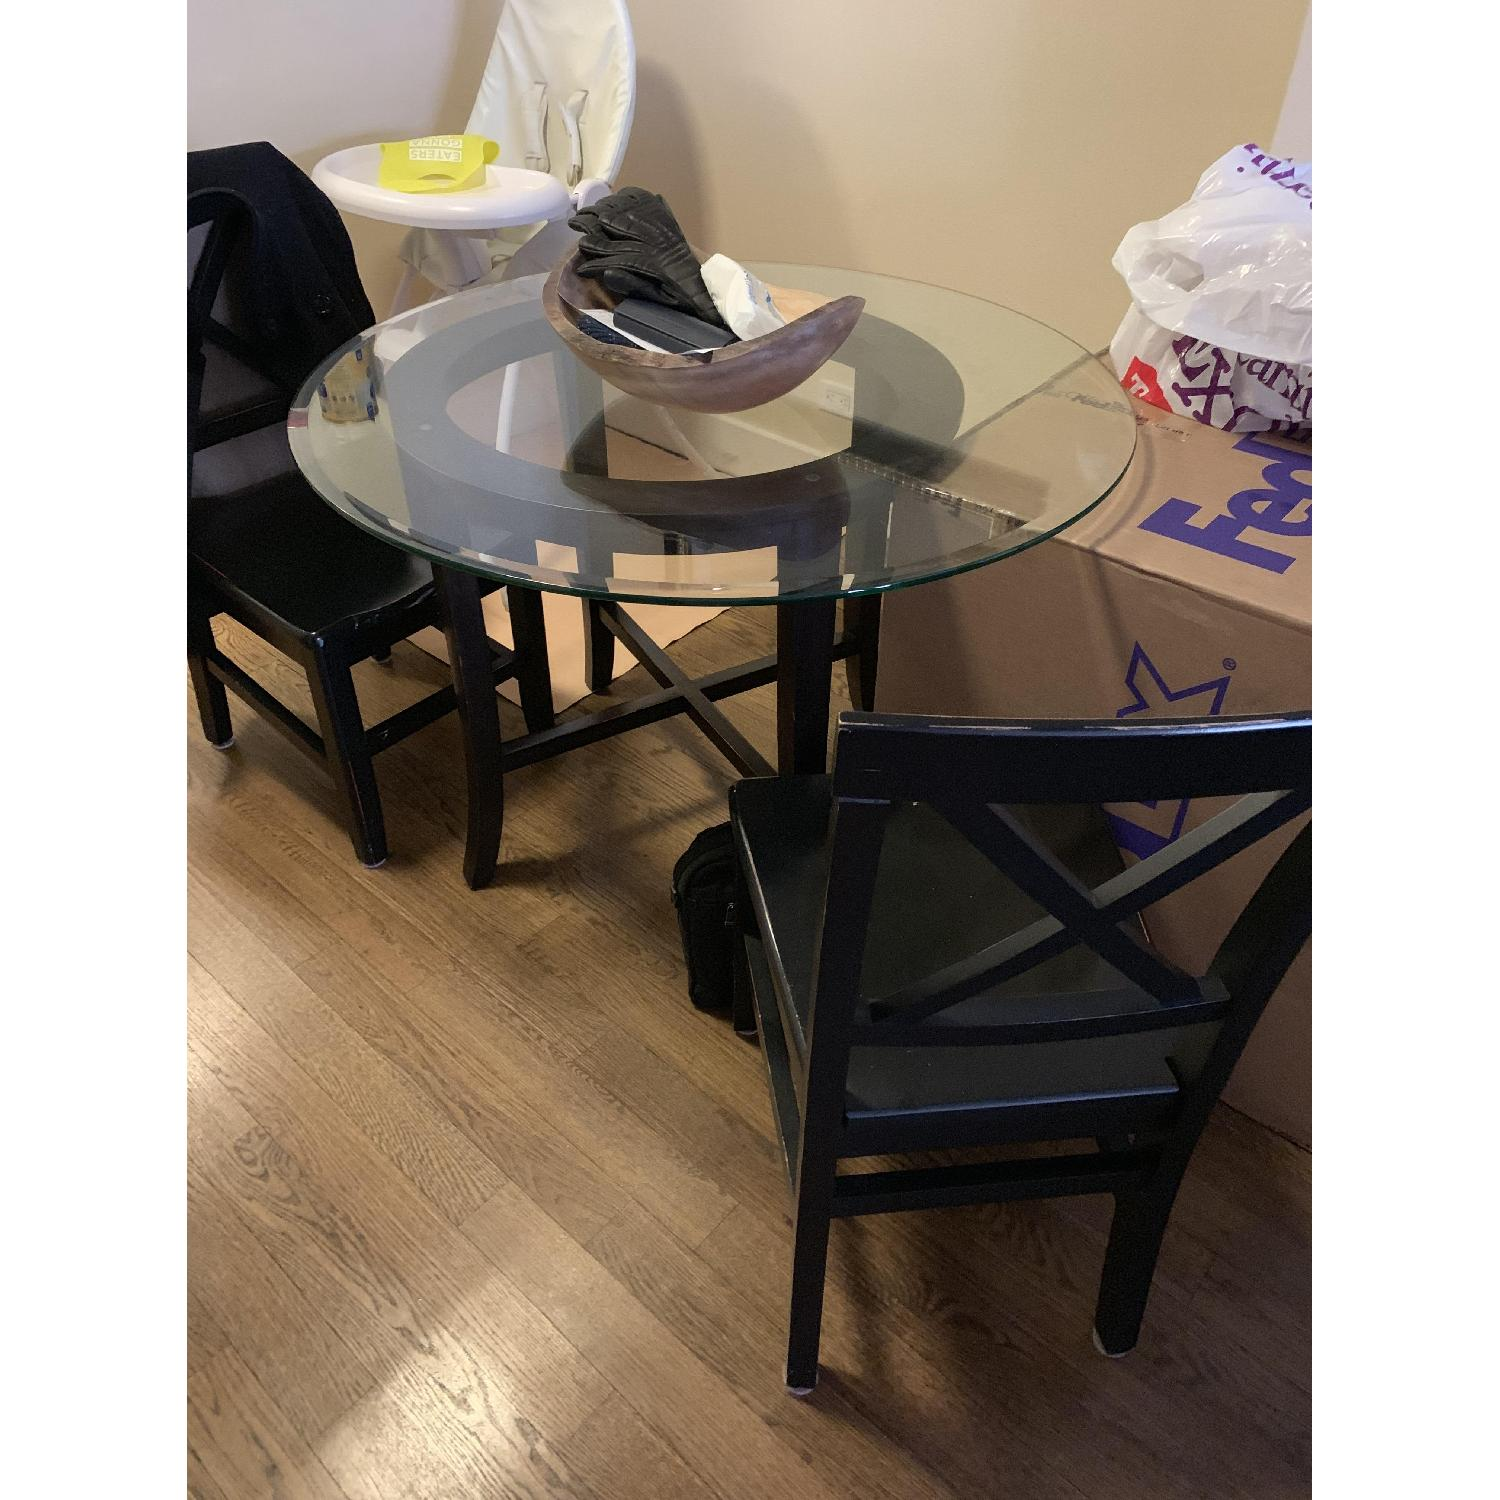 Crate & Barrel Halo Ebony Glass Top Dining Table w/ 2 Chairs-0